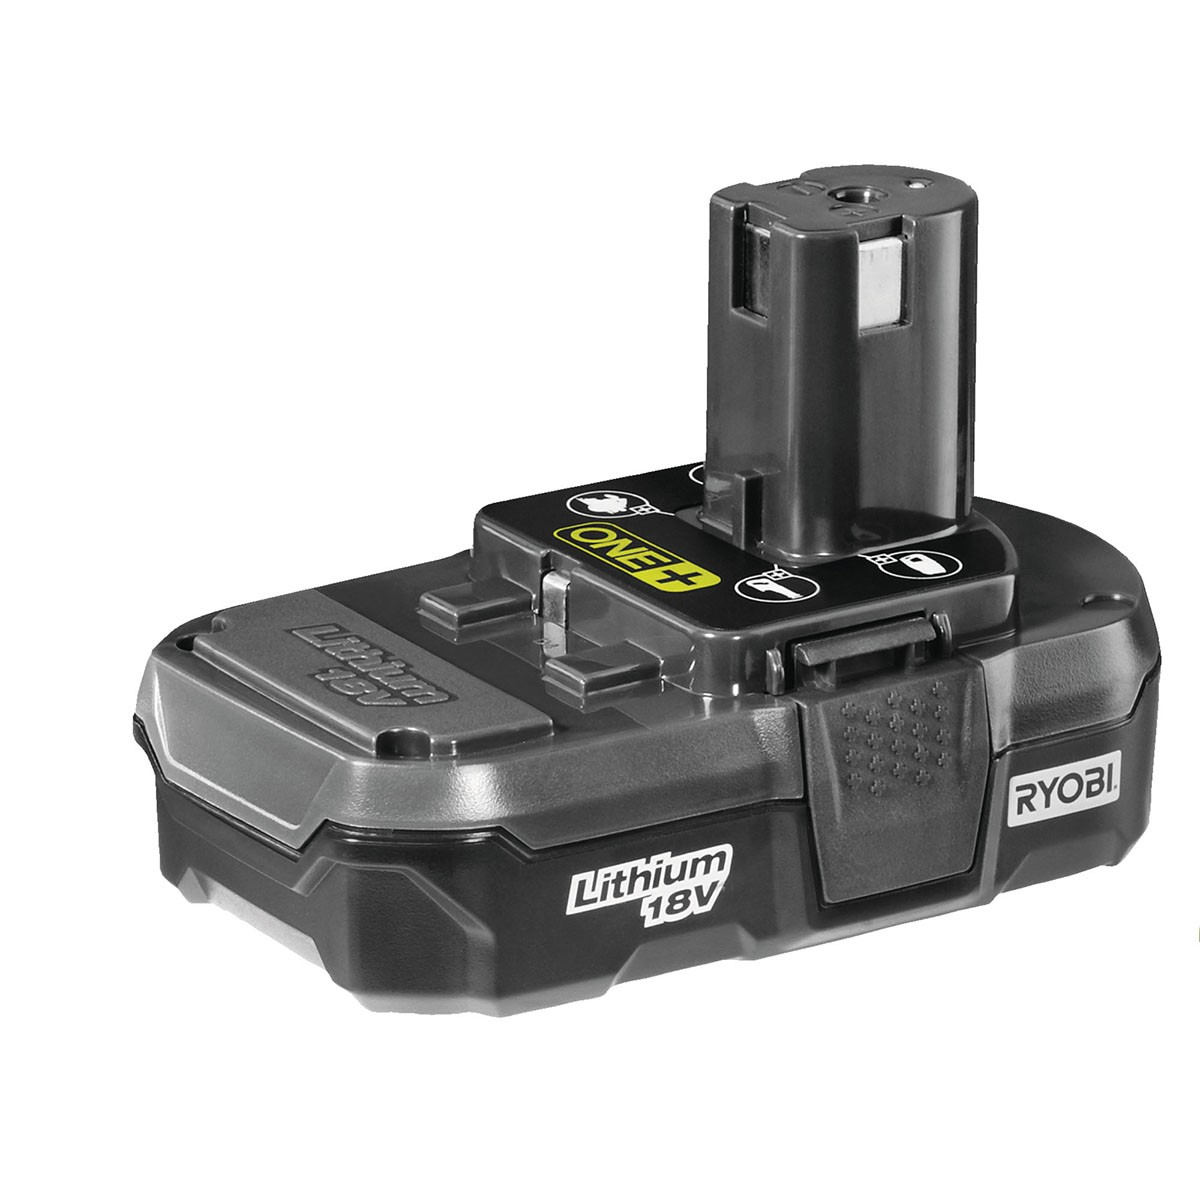 Ryobi ONE+ RB18L13 18V 1.3Ah Lithium Battery